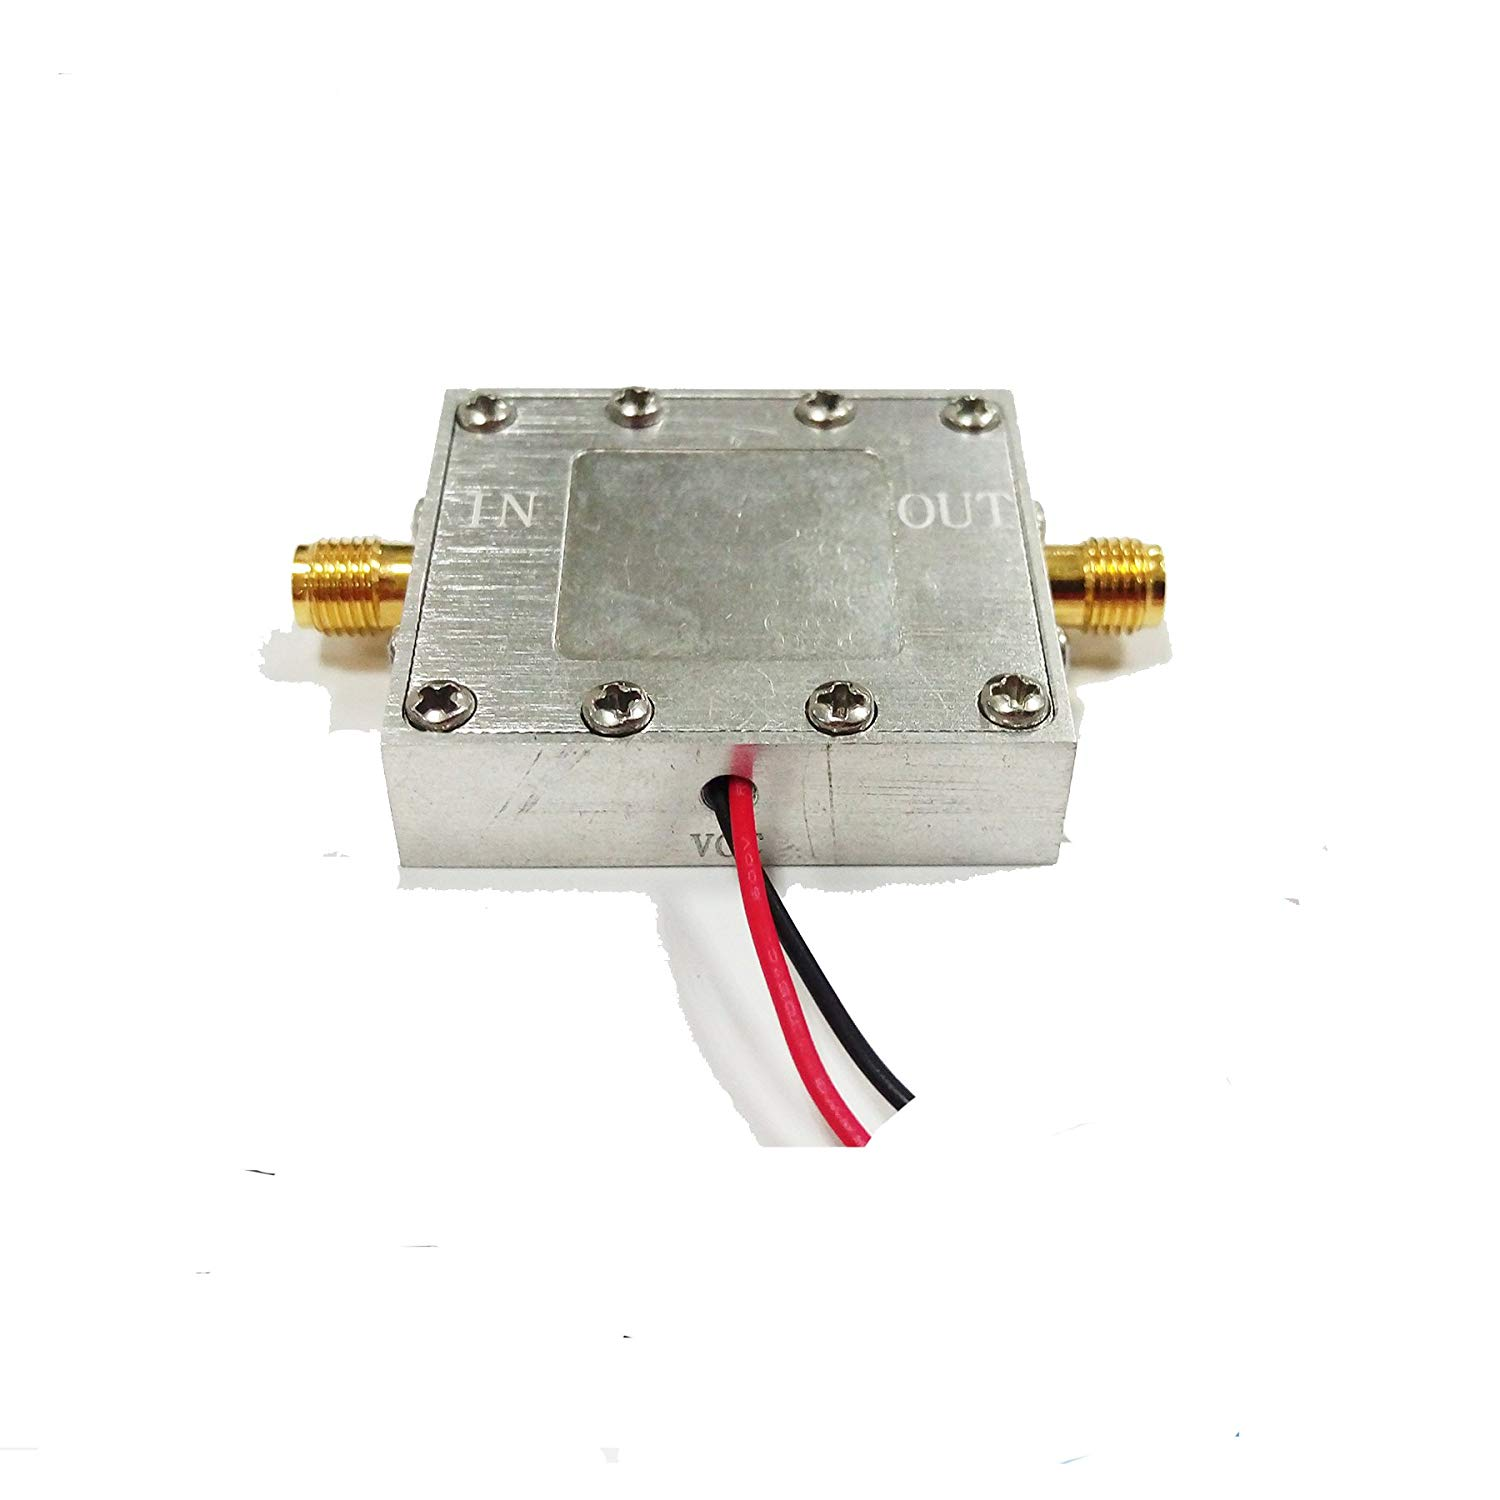 RF Amplifier Asixx LNA 0.05-4GHz NF=0.6dB Low Noise Amplifier or Wide Band Amplifier Signal Receiver for RF FM HF VHF//UHF Ham Radio